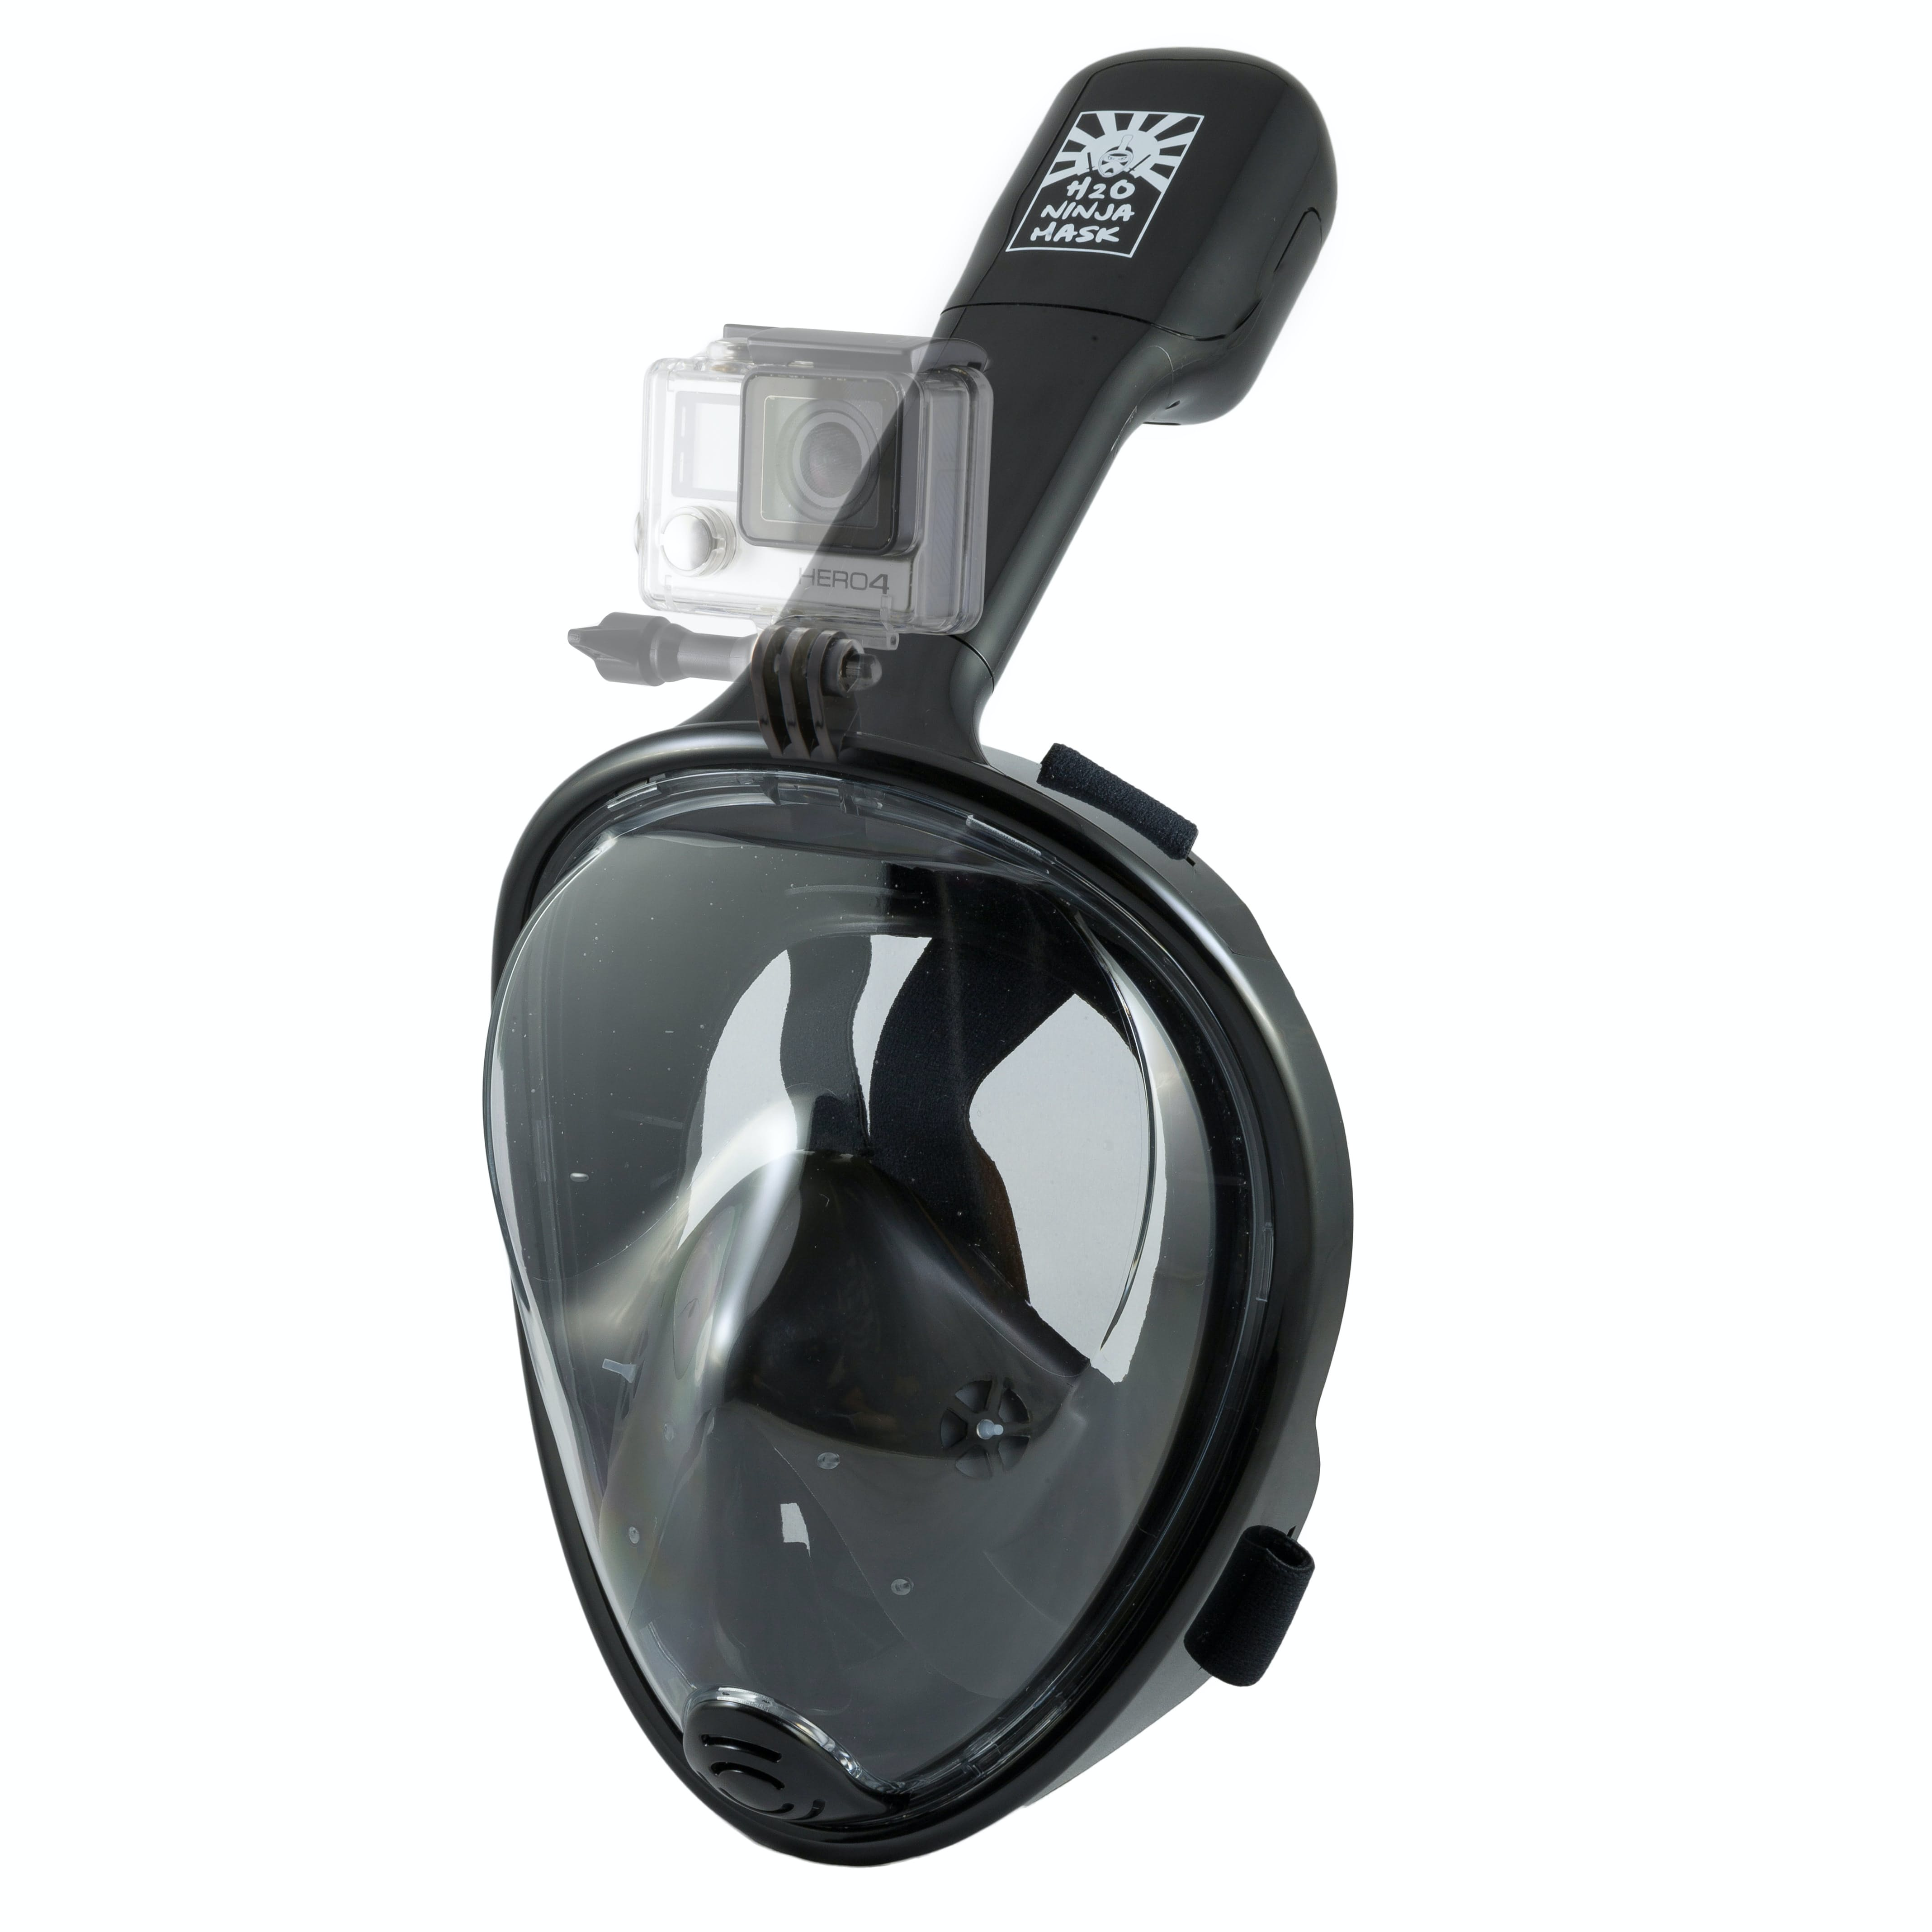 Koss4gn8u2 h2o ninja mask full face snorkel mask gopro mount 0 original